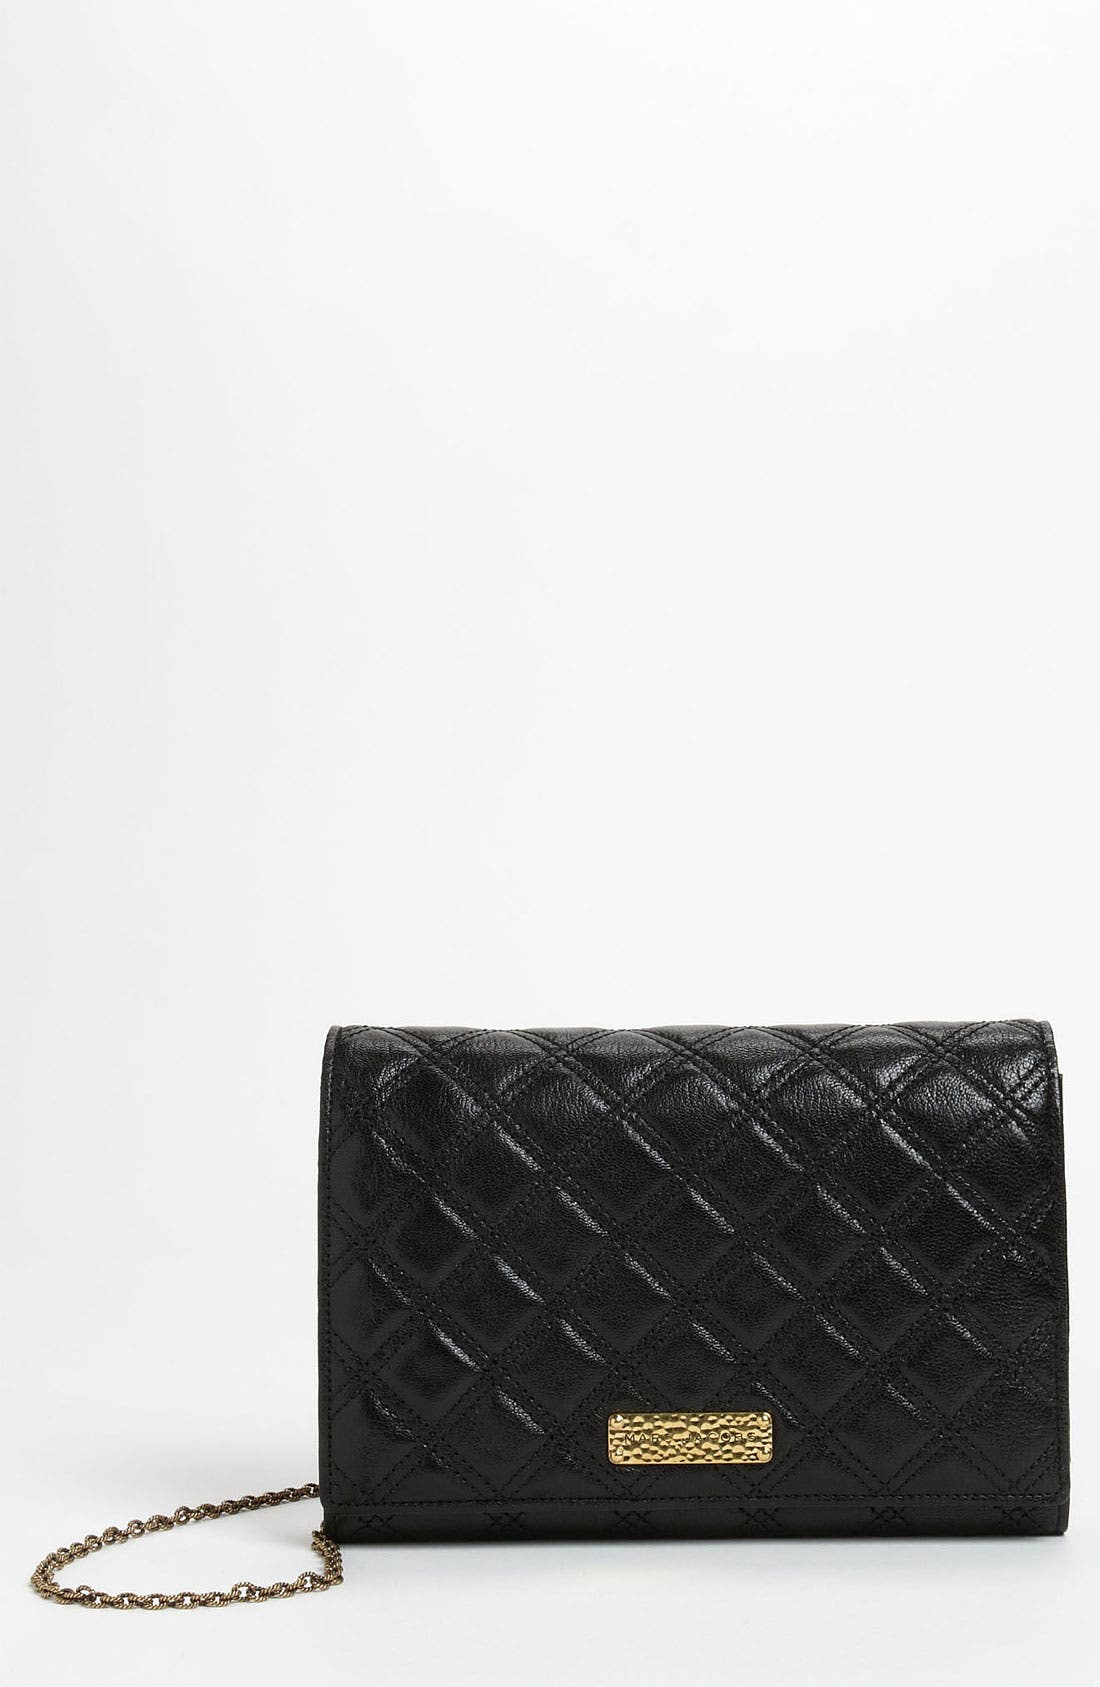 Main Image - MARC JACOBS 'Baroque All In One' Convertible Clutch